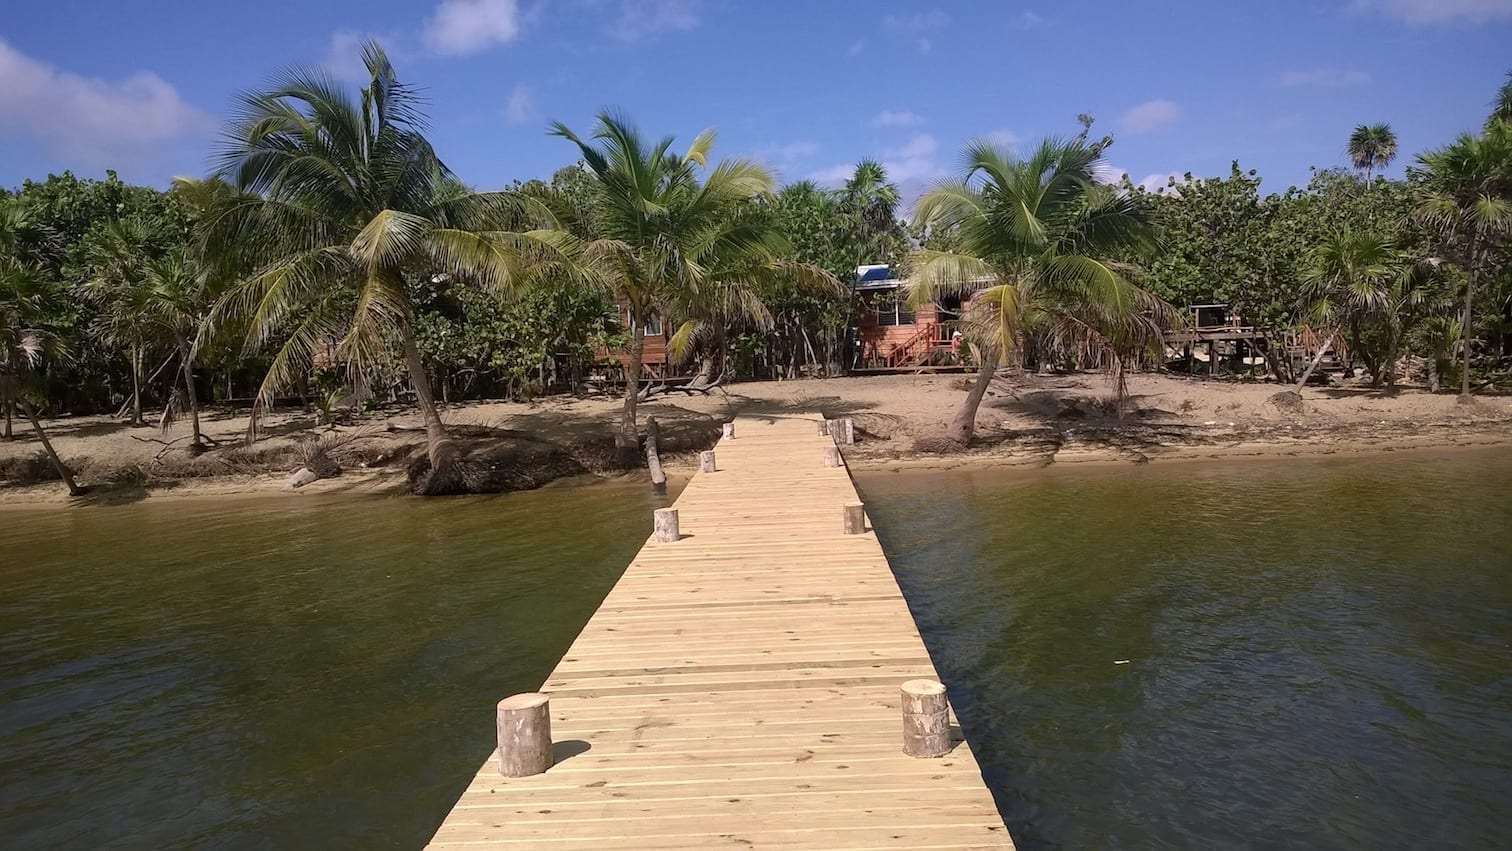 Employment Bed And Breakfast Belize